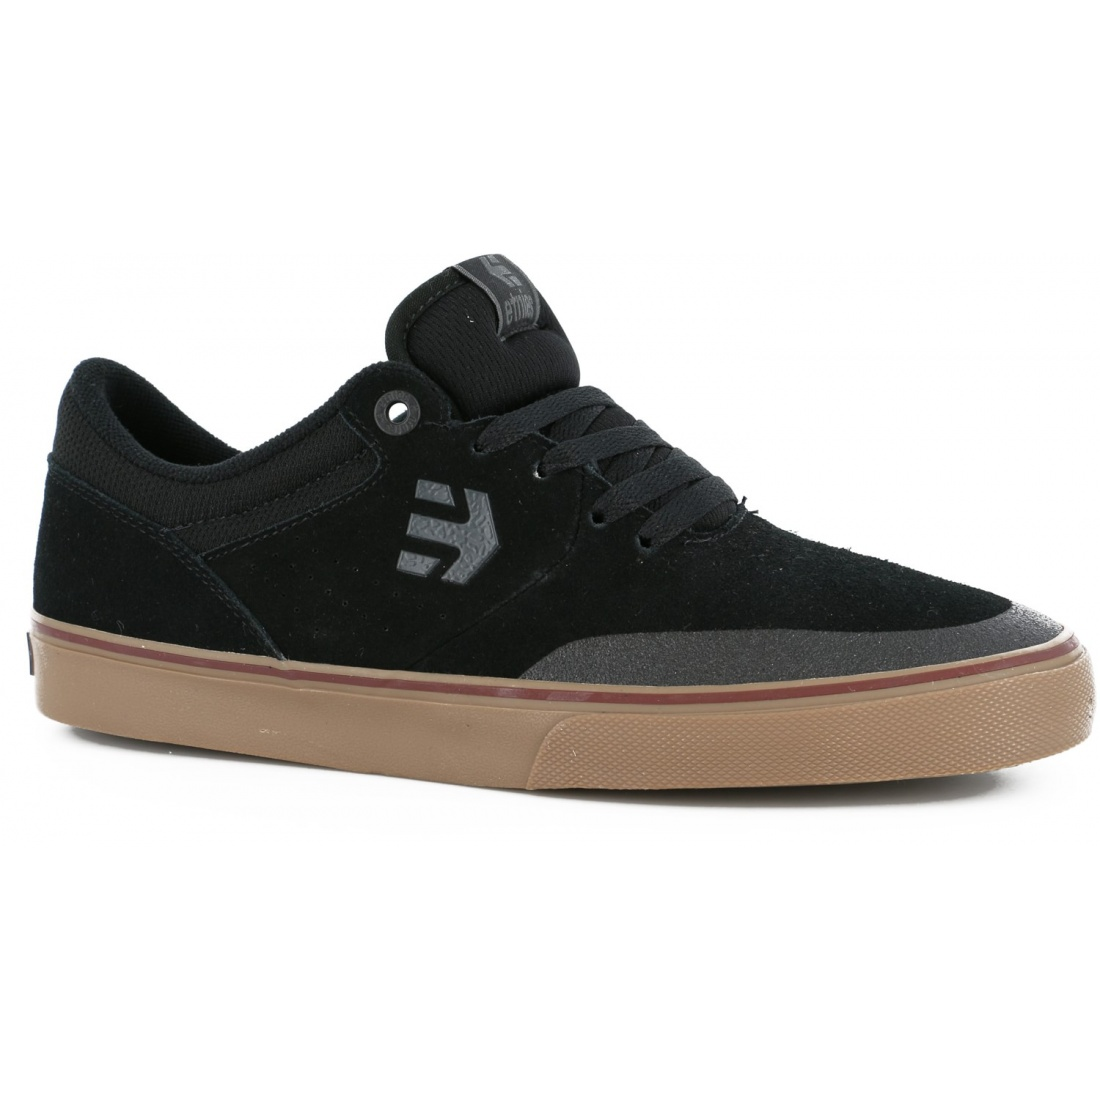 ETN-Marana Vulc Black/Gum Shoes 11 US 45 EU